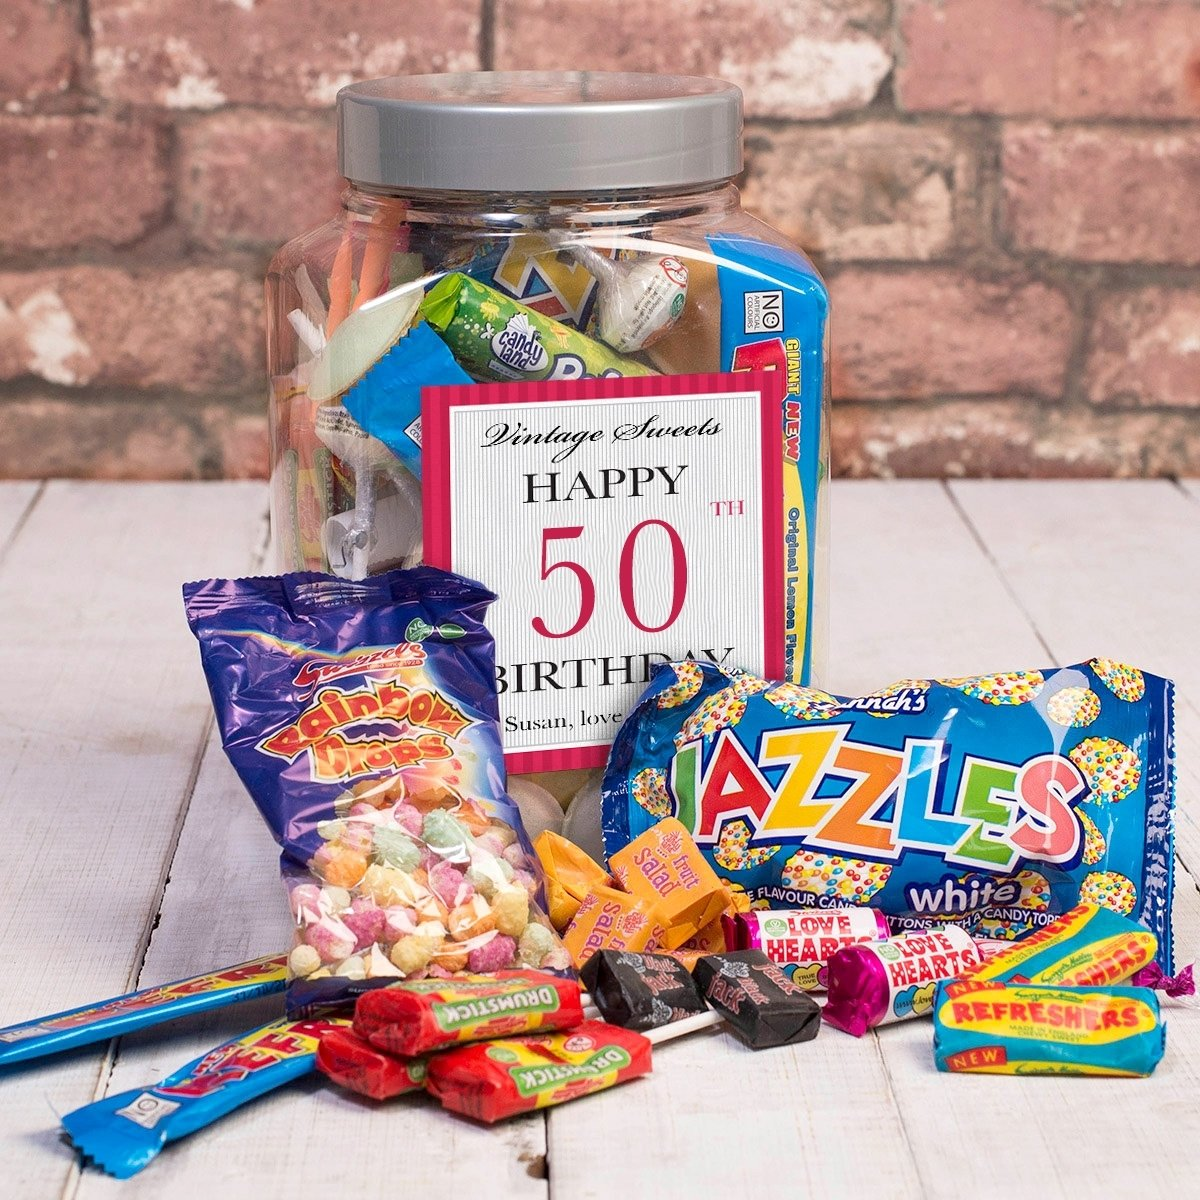 10 Beautiful 50Th Birthday Gift Ideas For Wife Personalised Retro Sweet Jar Happy 50th Gettingpersonal